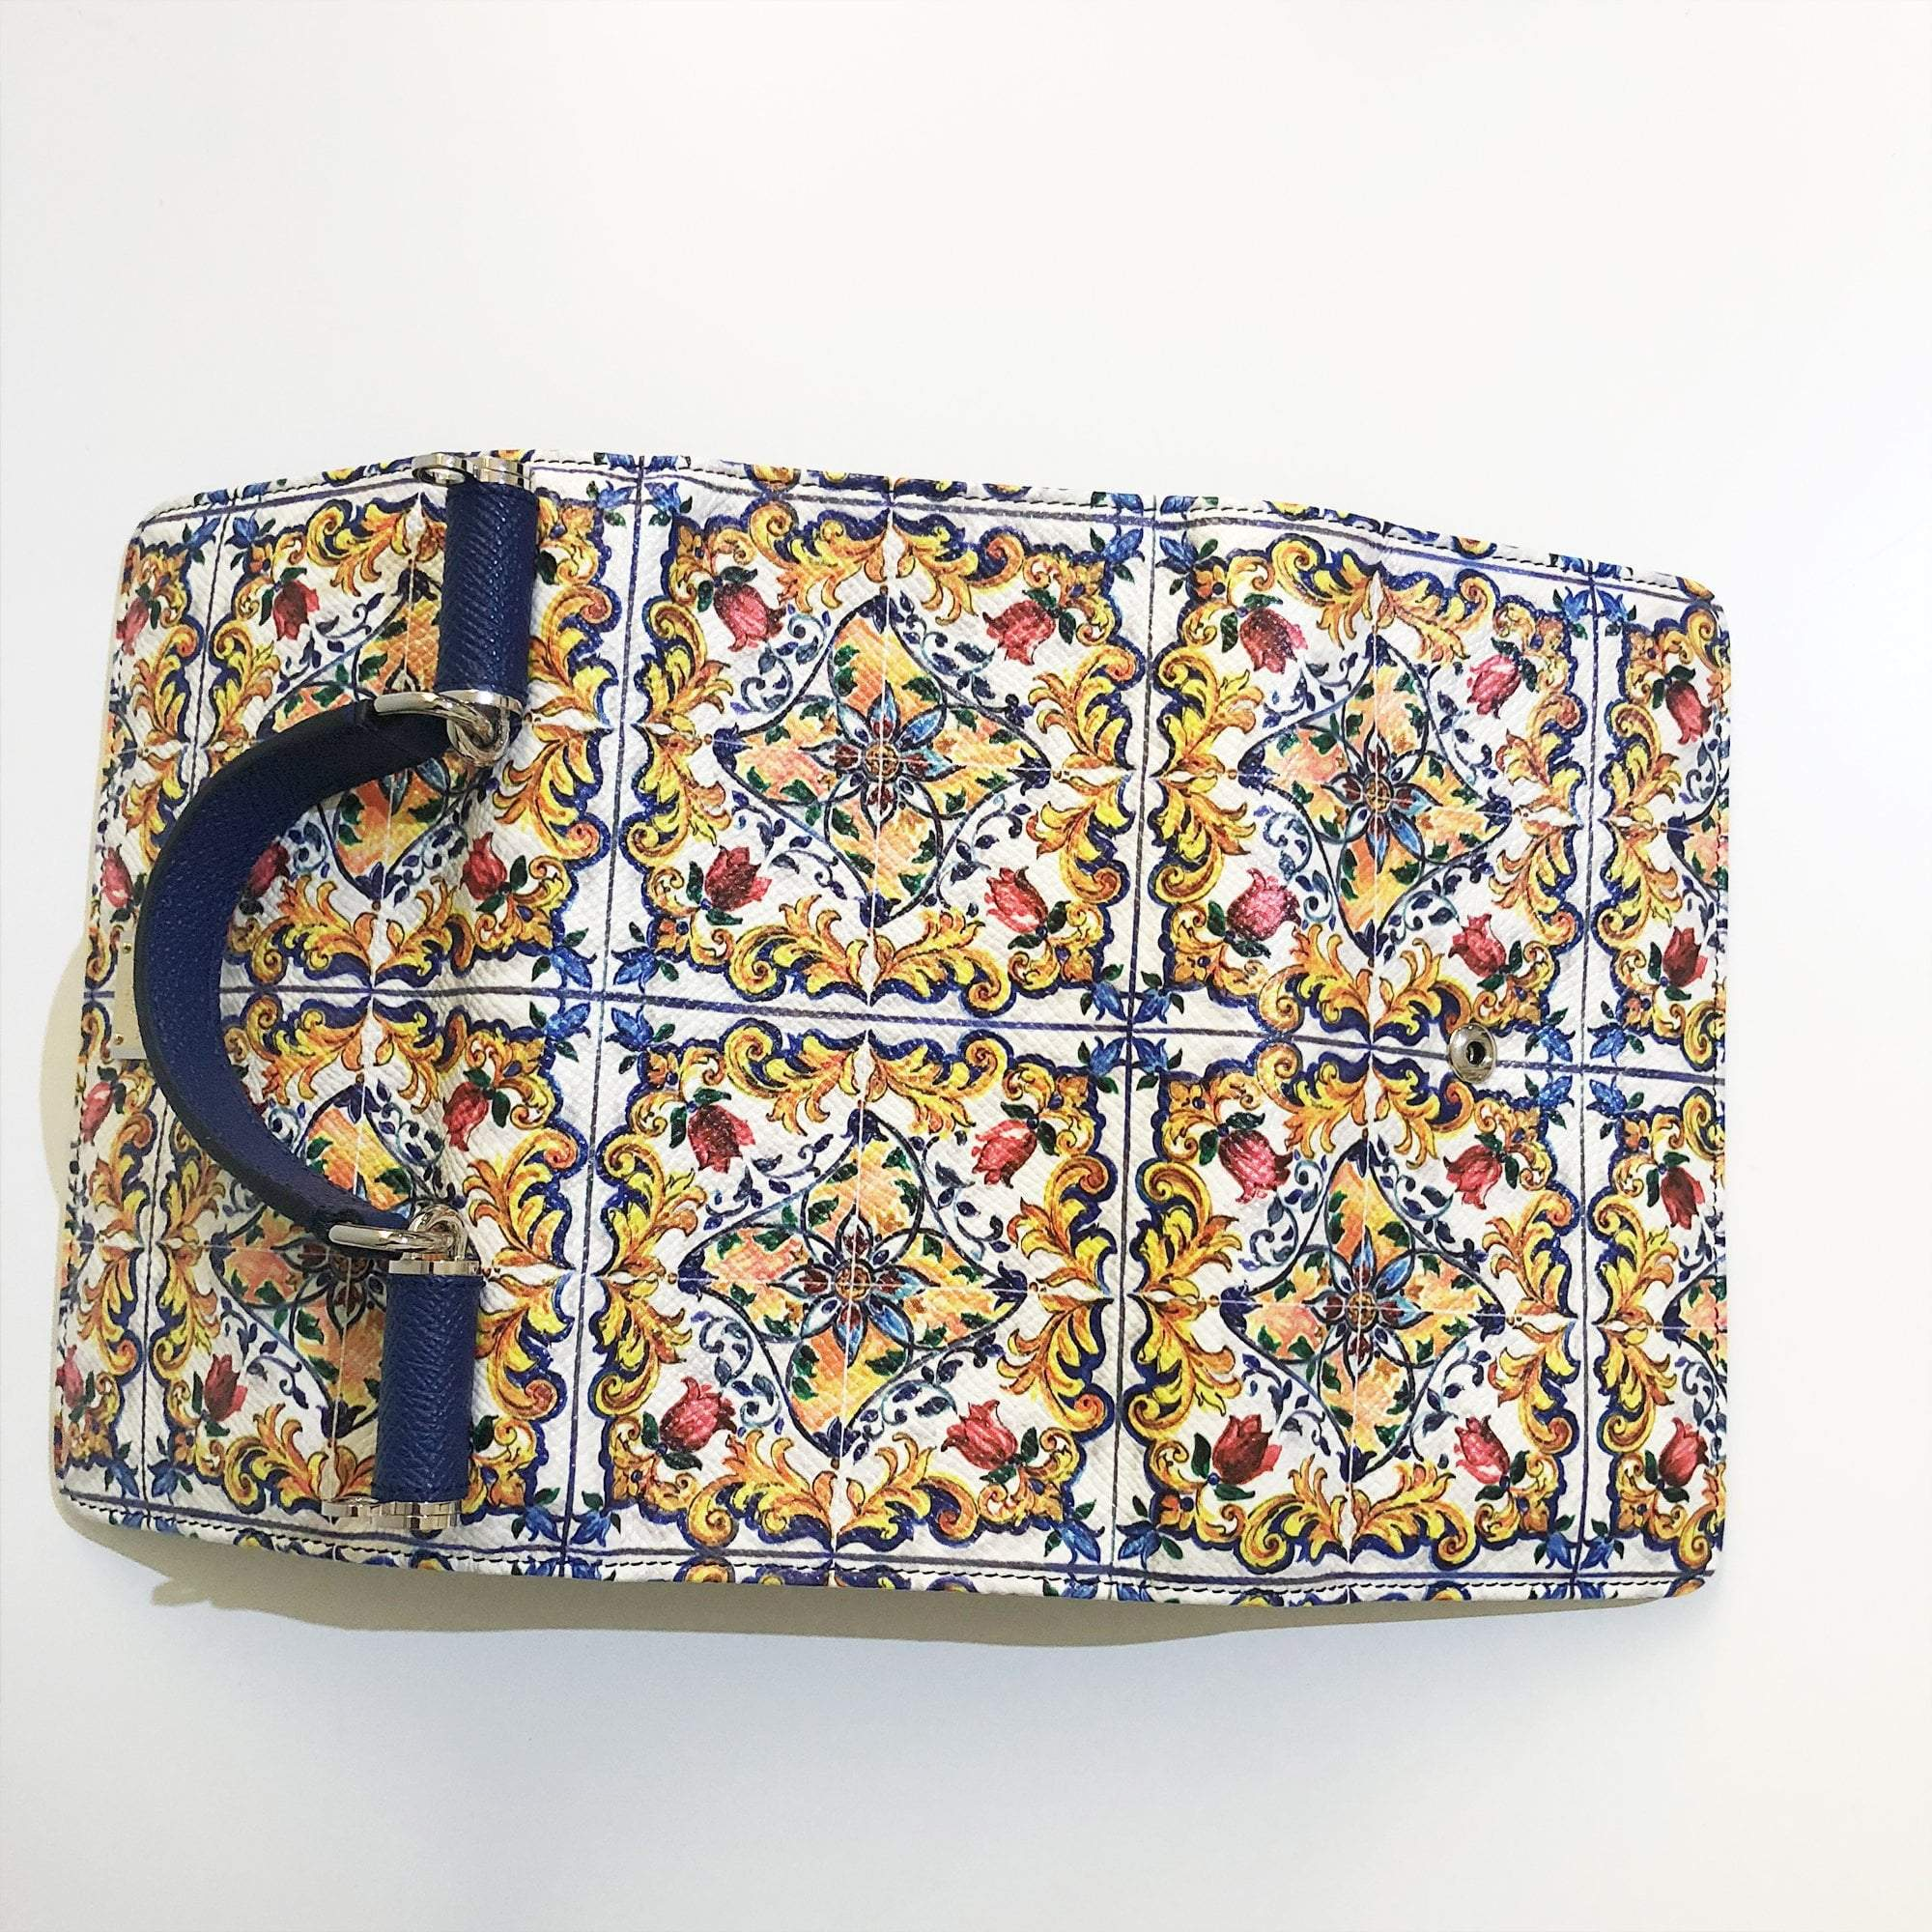 Dolce and Gabbana Mini Sicily Flower Print Phone Bag